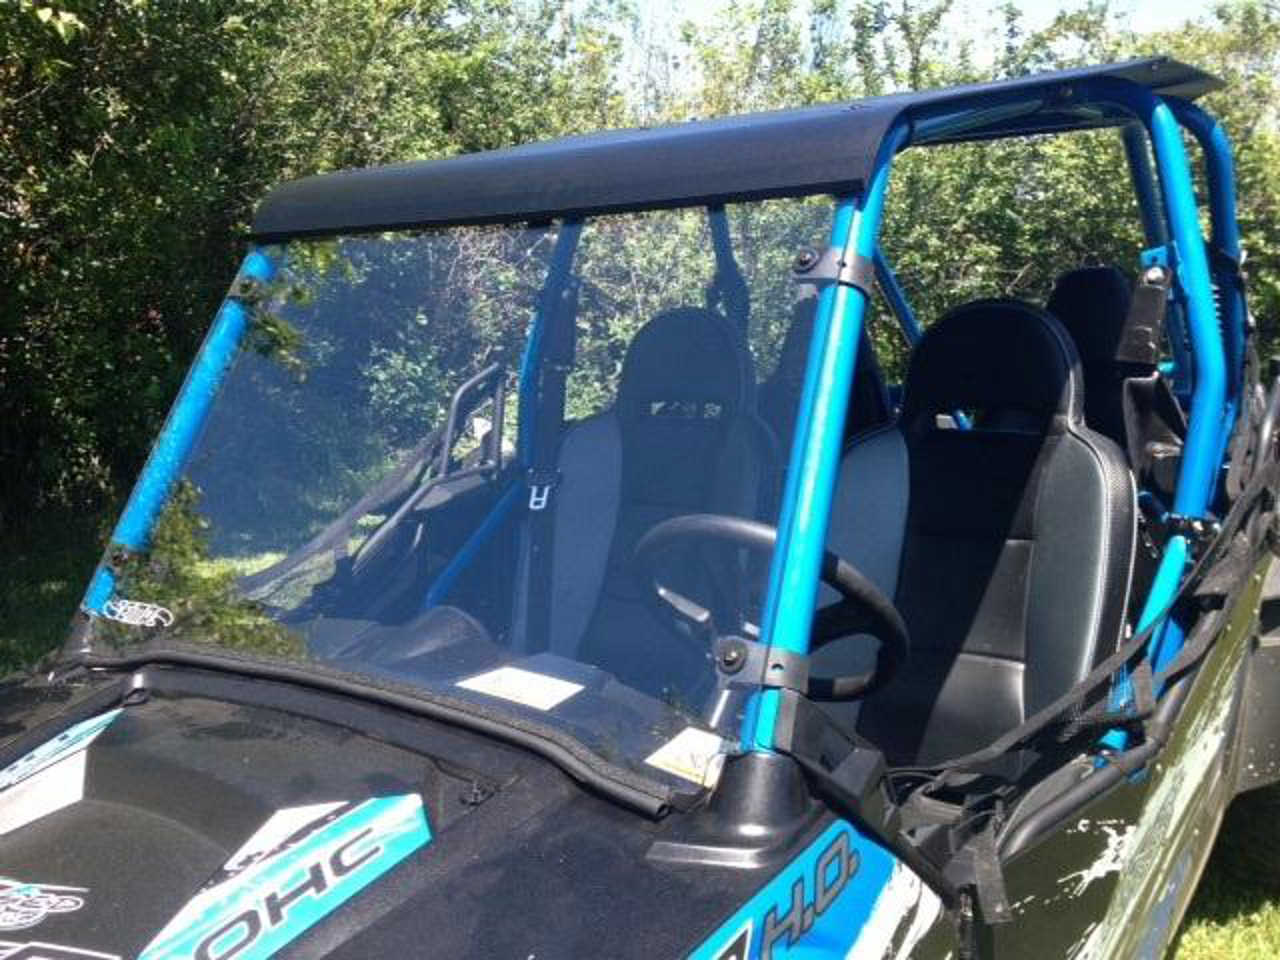 Rzr Windshield For Jagged X 4 Atv Illustrated